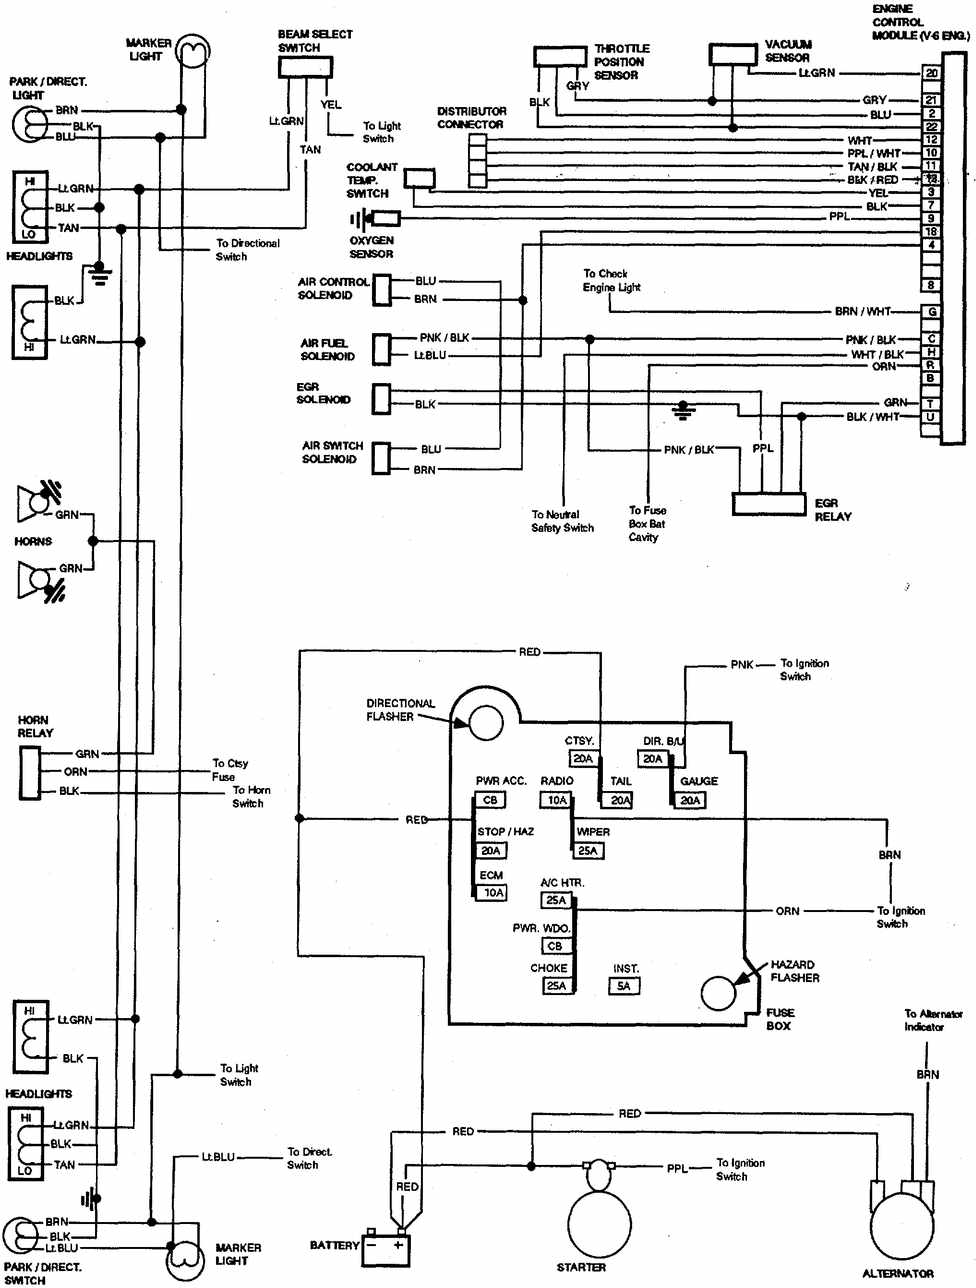 92 mustang dash lights wiring diagram